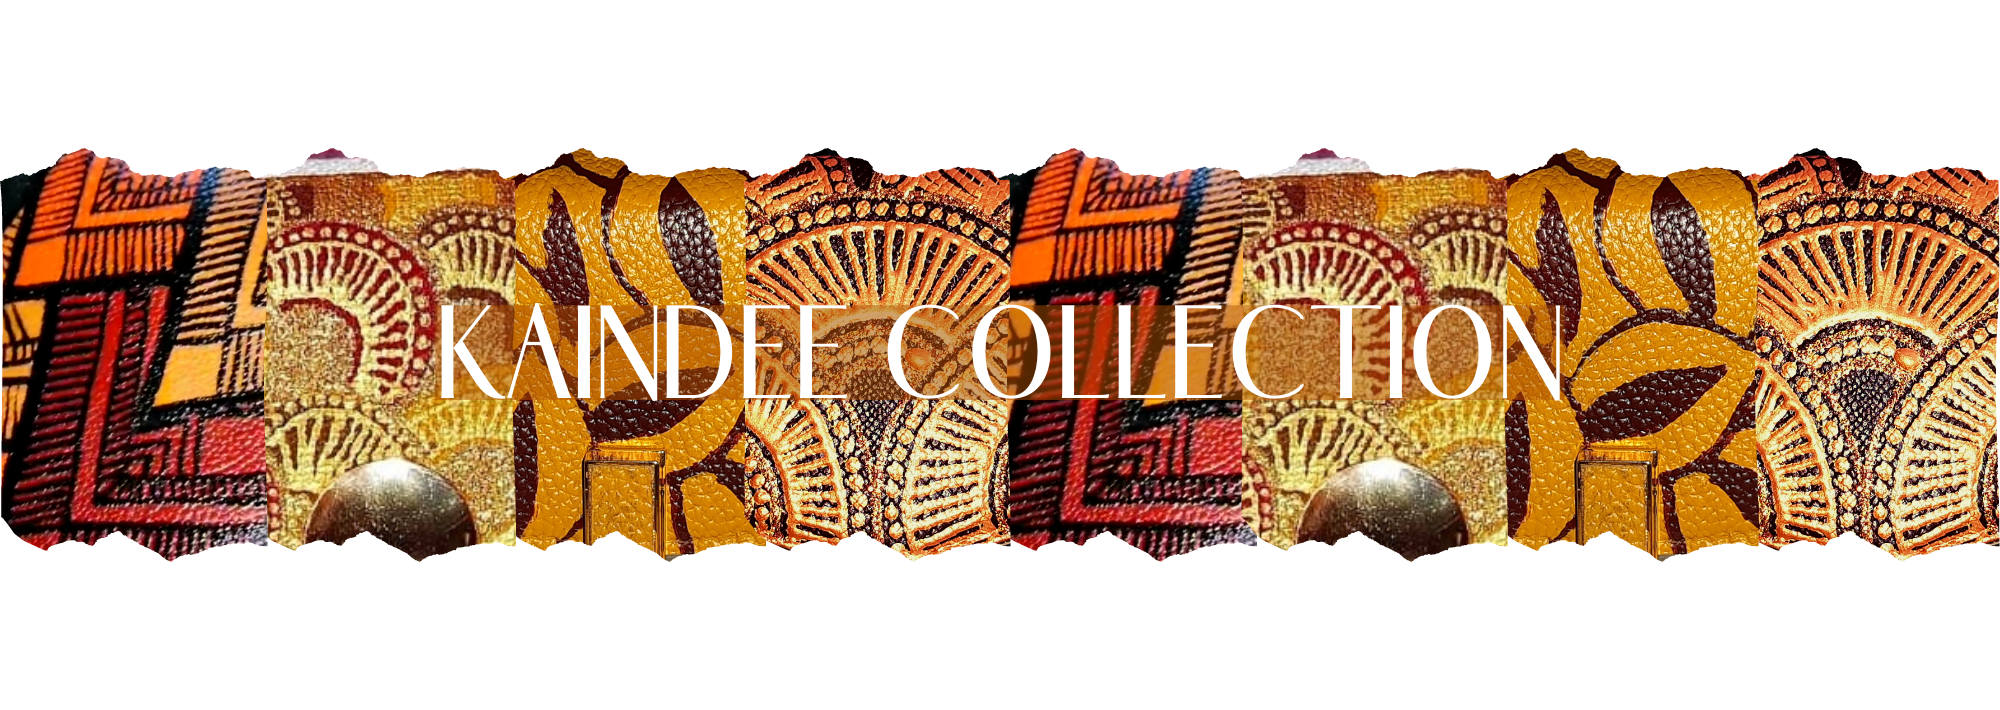 KAINDEE COLLECTION